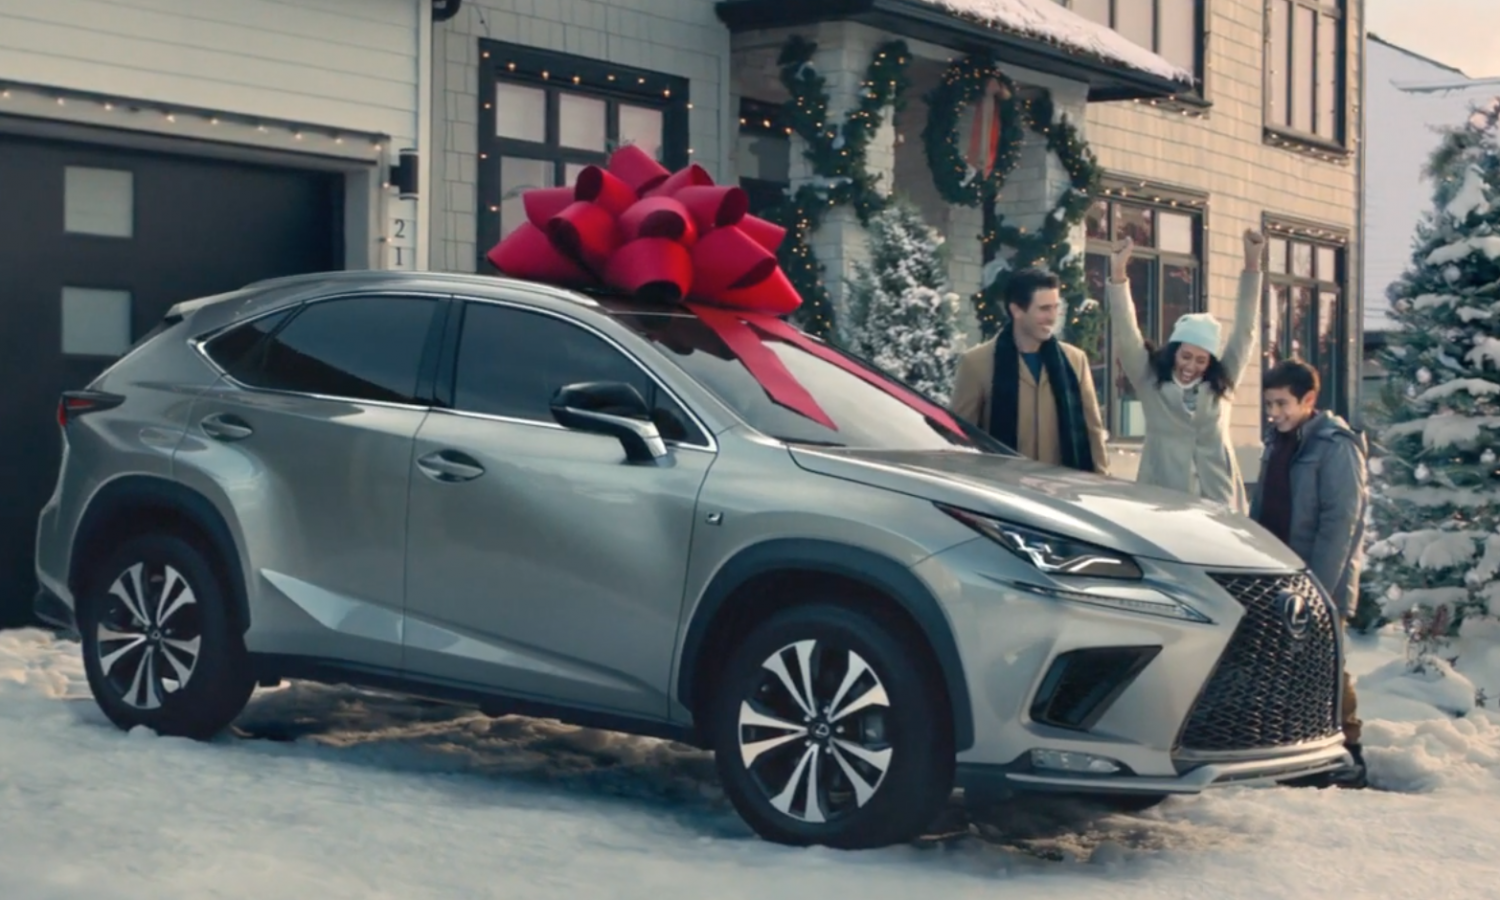 'Tis the Season for Giving: <br> 20 Years of Lexus' Signature <br> Red Holiday Bows